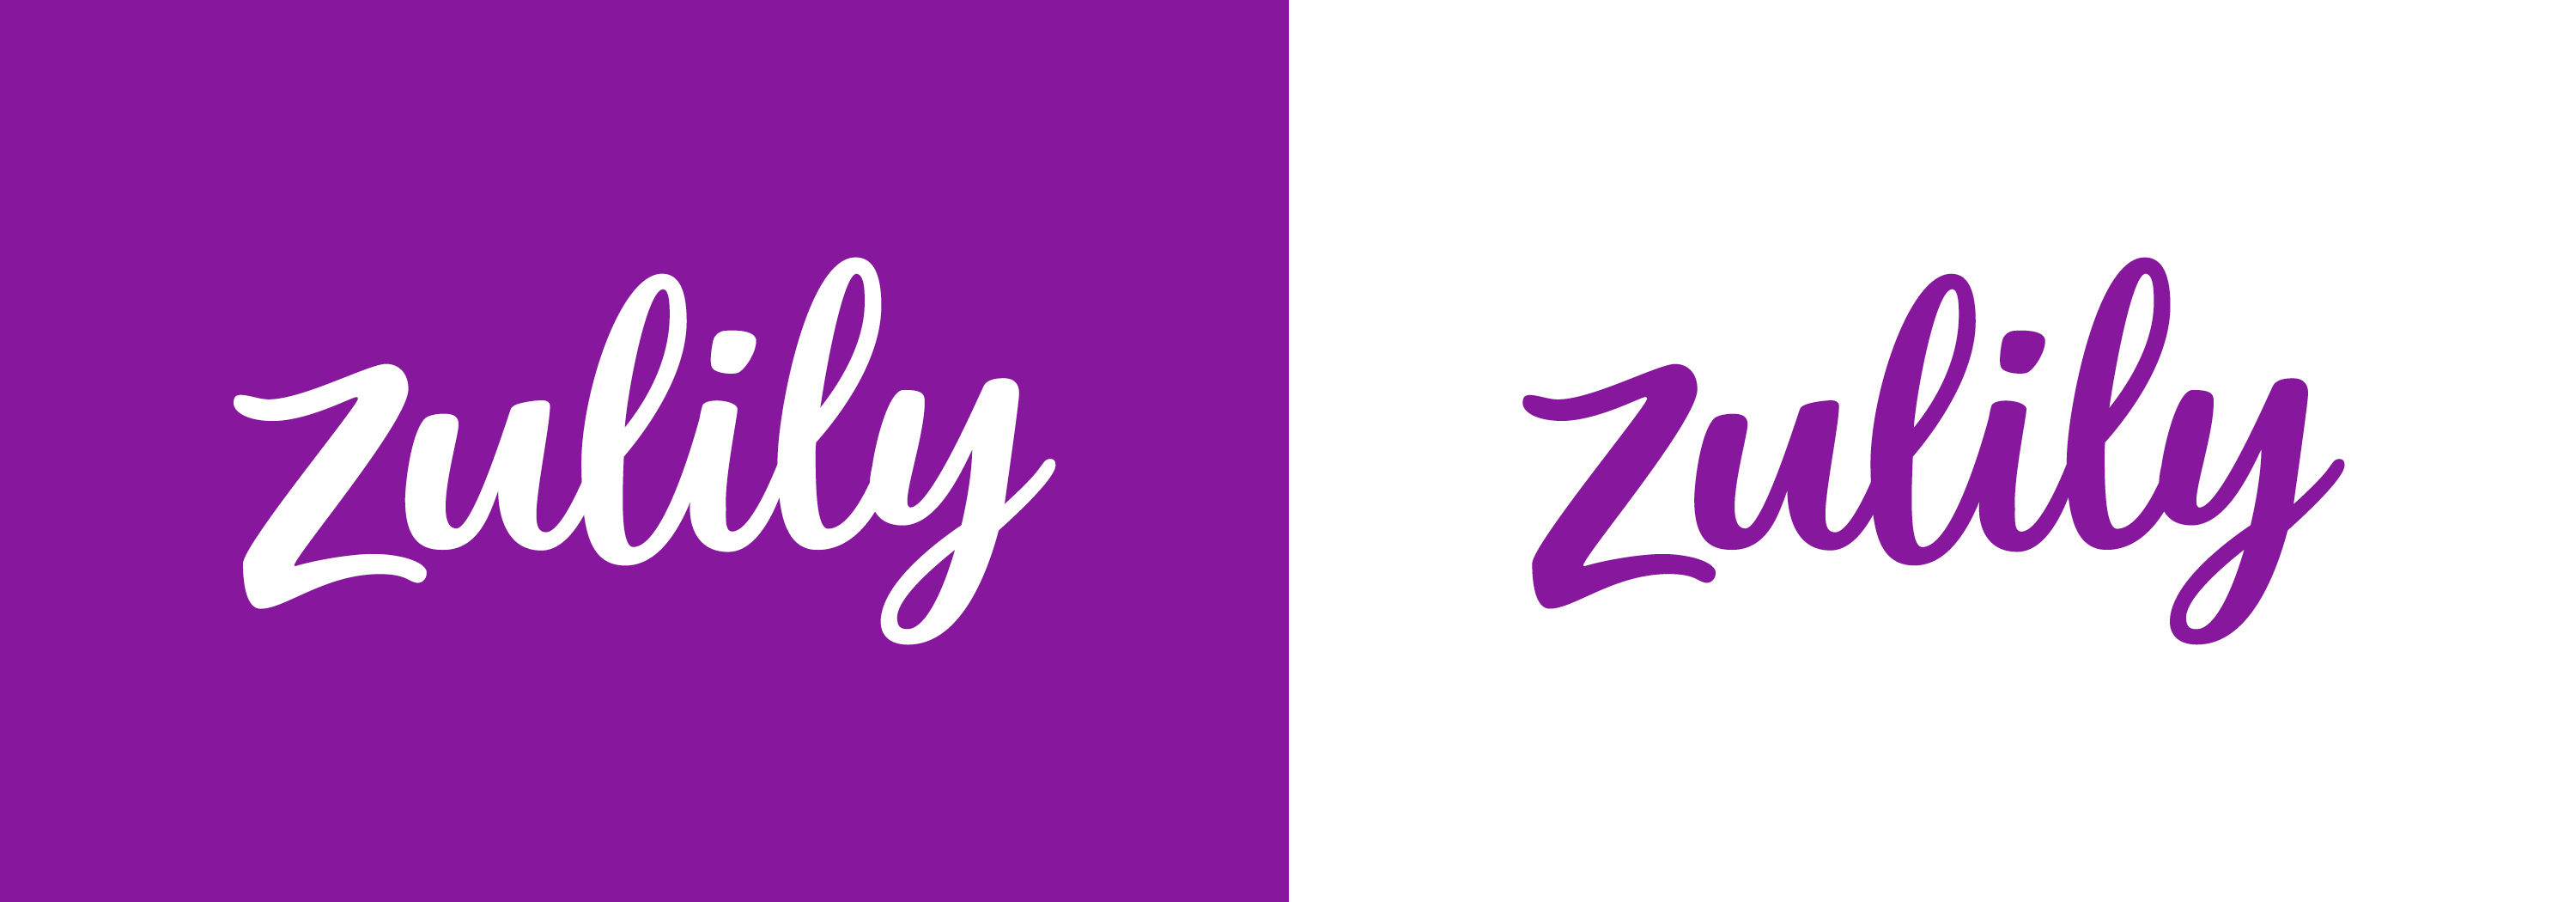 Online Retailer Zulily Debuts New Look and Feel, Bringing.